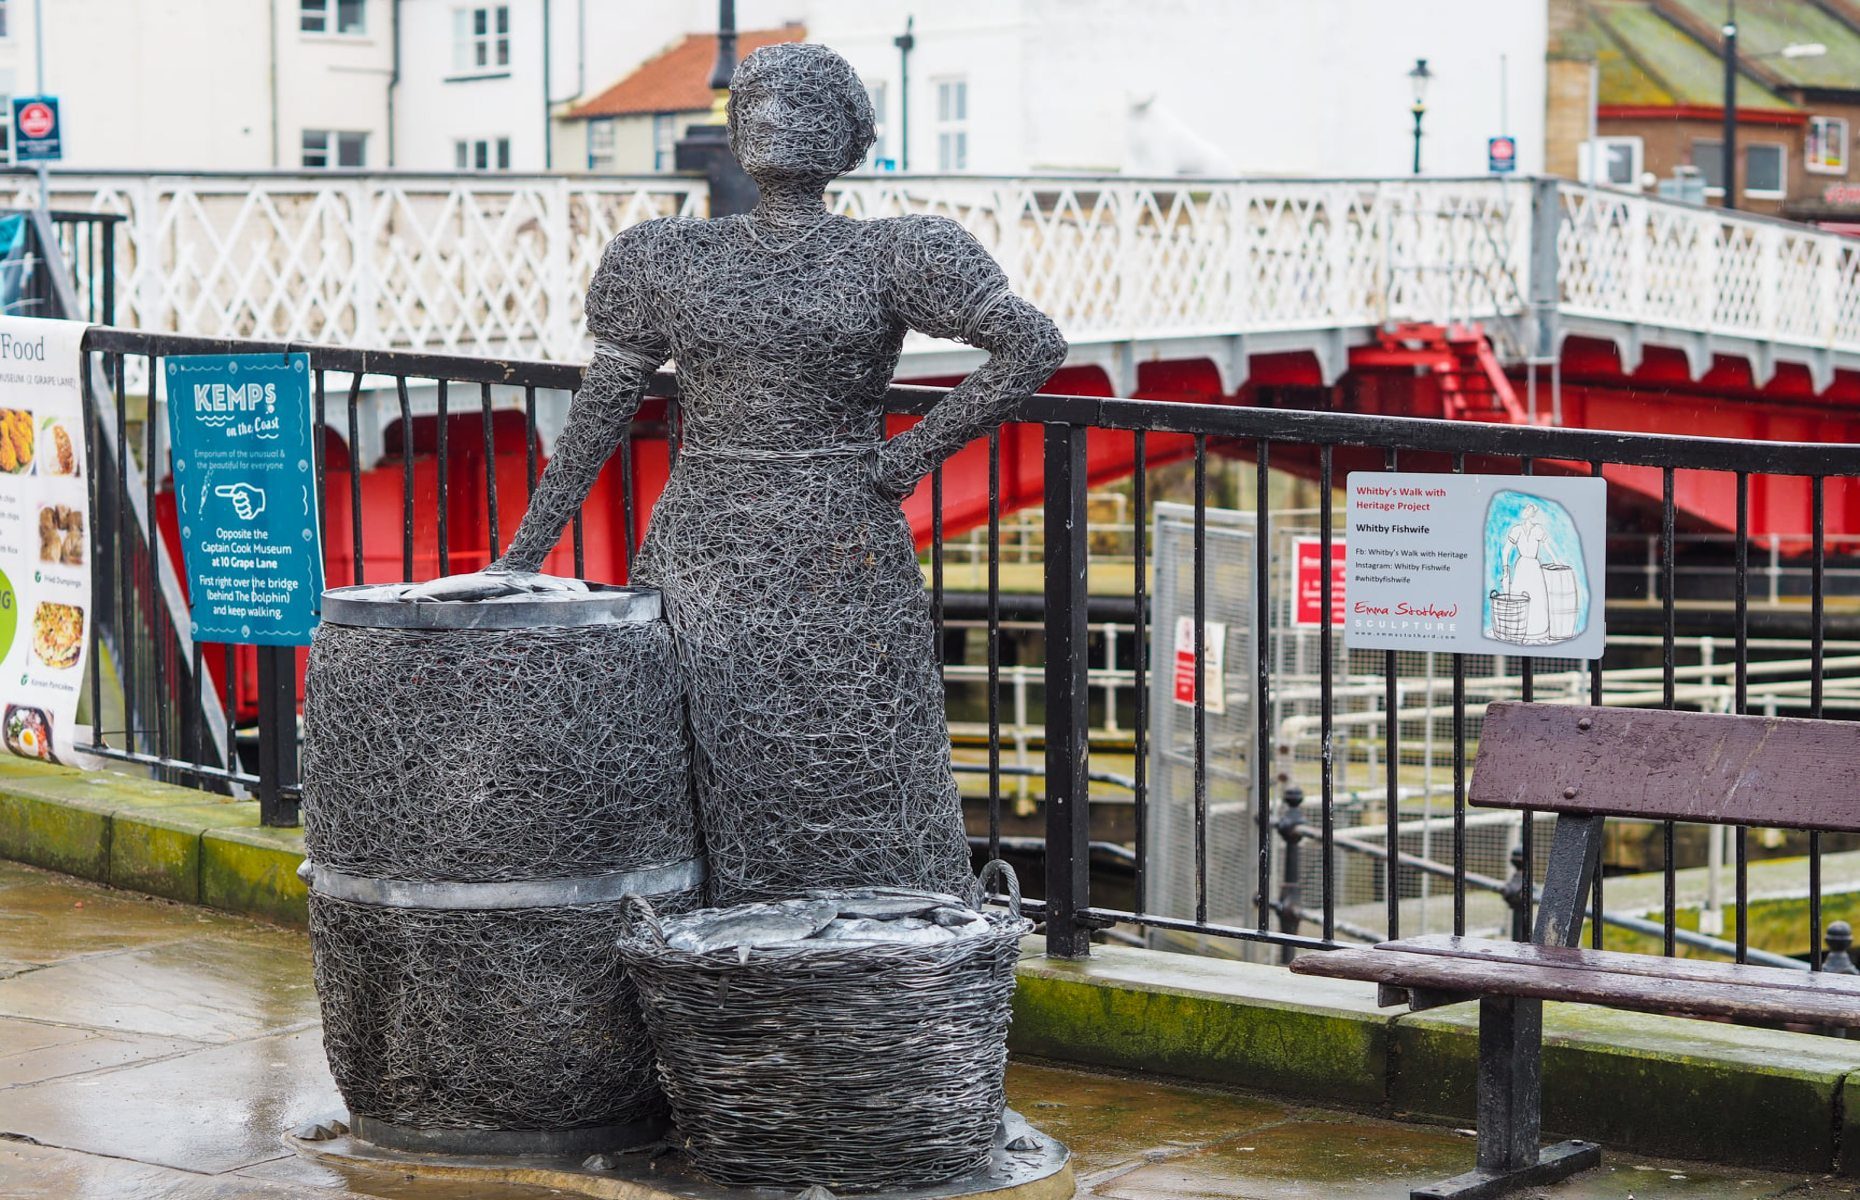 One of the sculptures by Emma Stothard (Image: Discover Yorkshire Coast/Facebook)